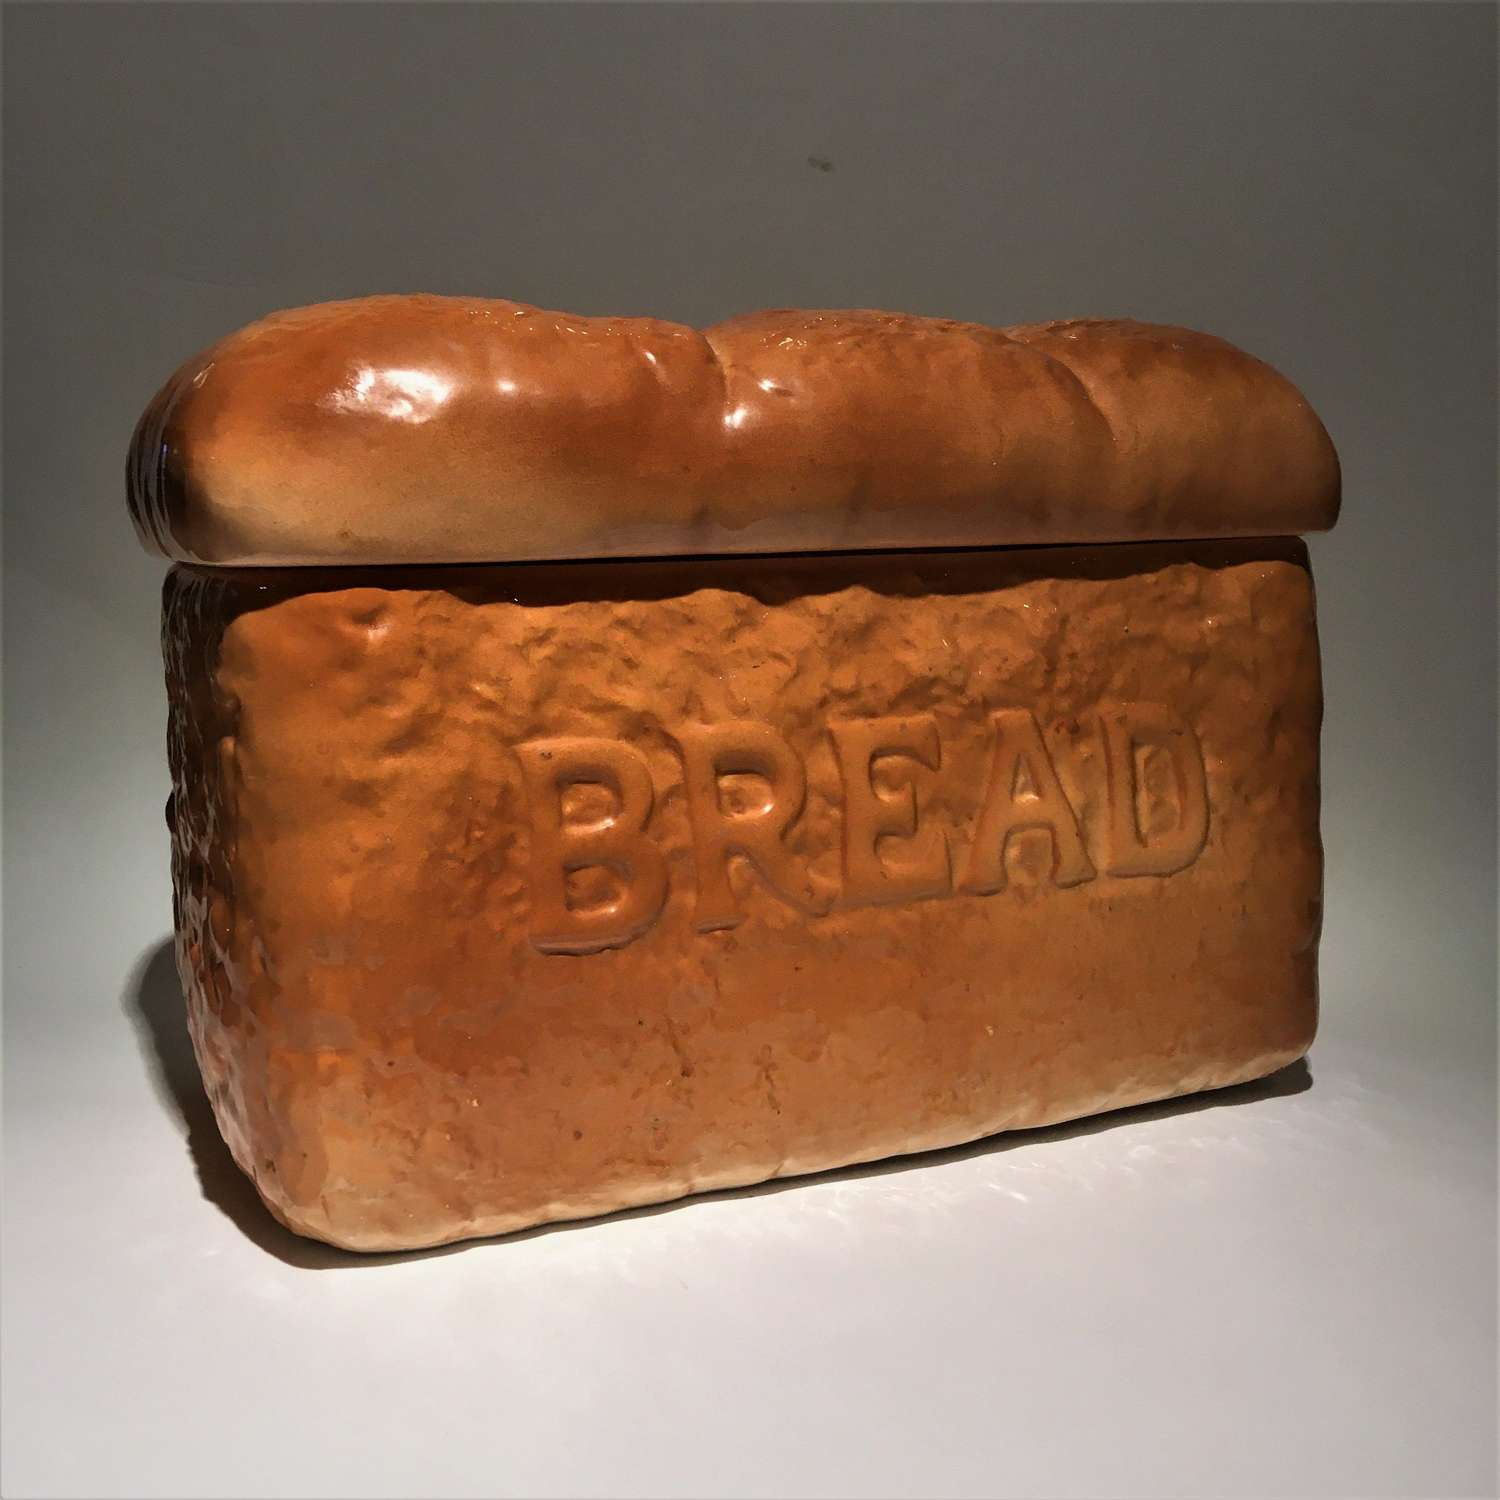 A trompe l'oeil pottery bread bin shaped like a loaf of bread